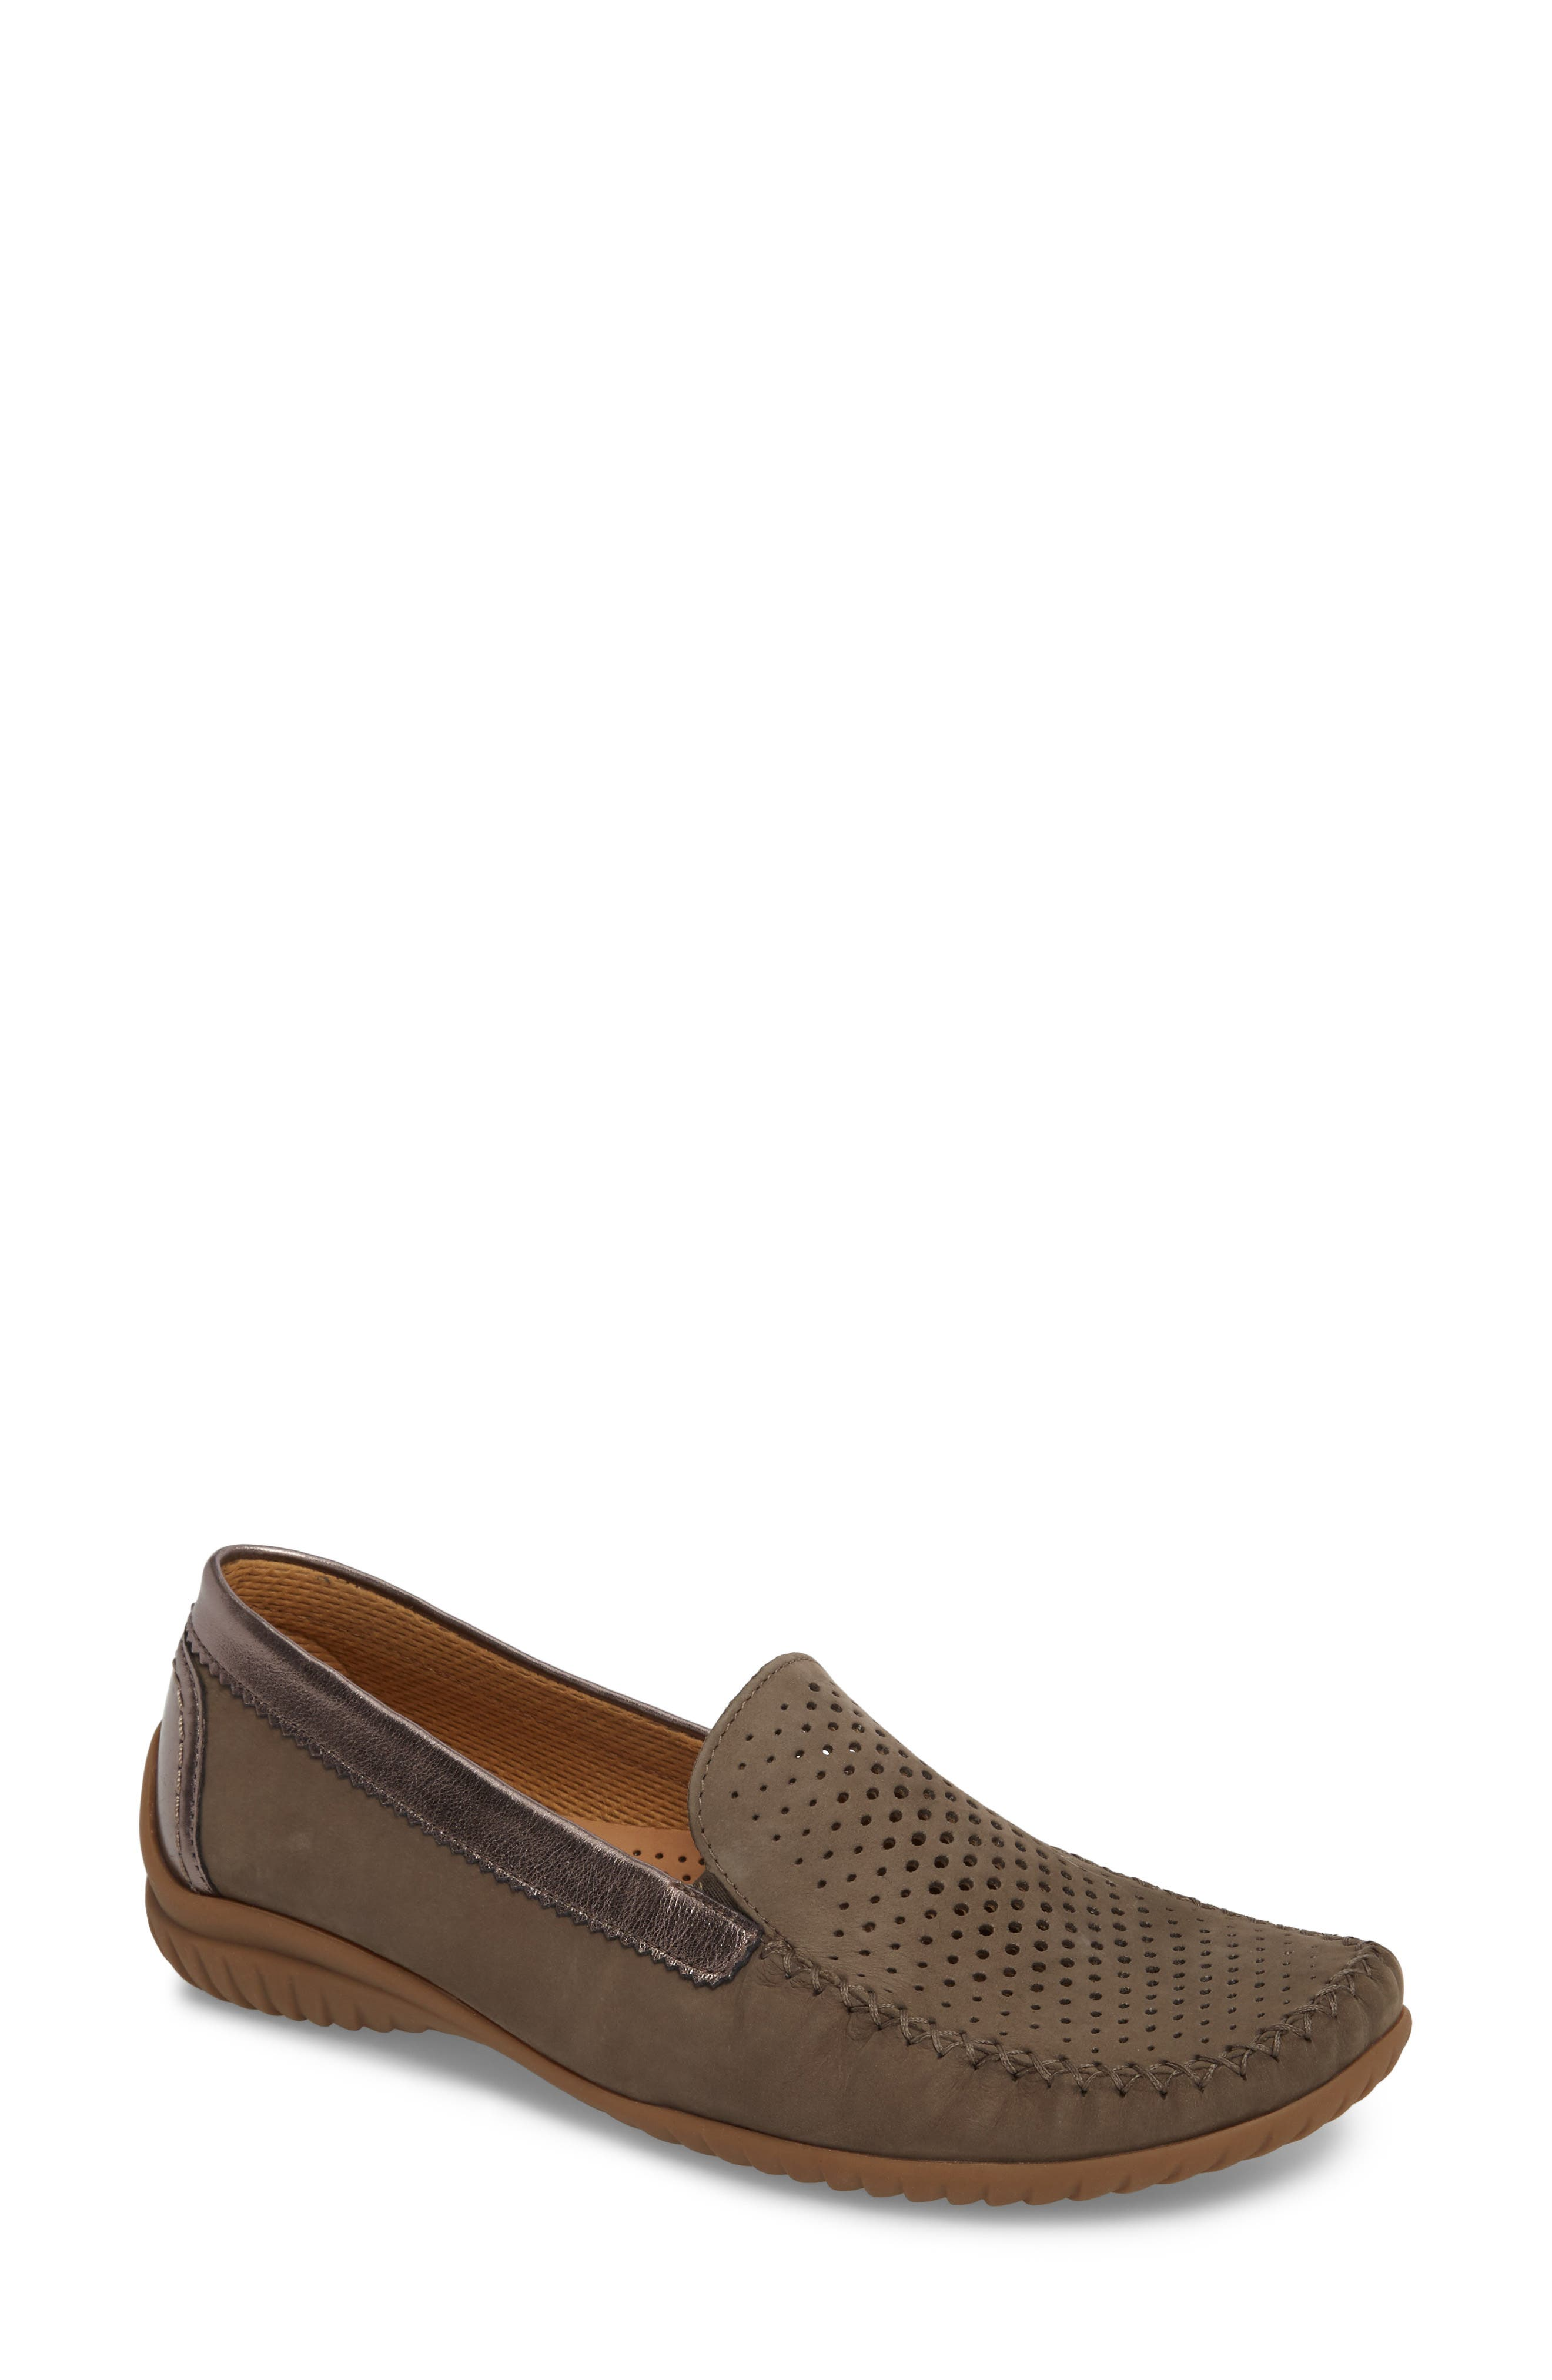 Moccasin Loafer,                             Main thumbnail 1, color,                             BEIGE NUBUCK